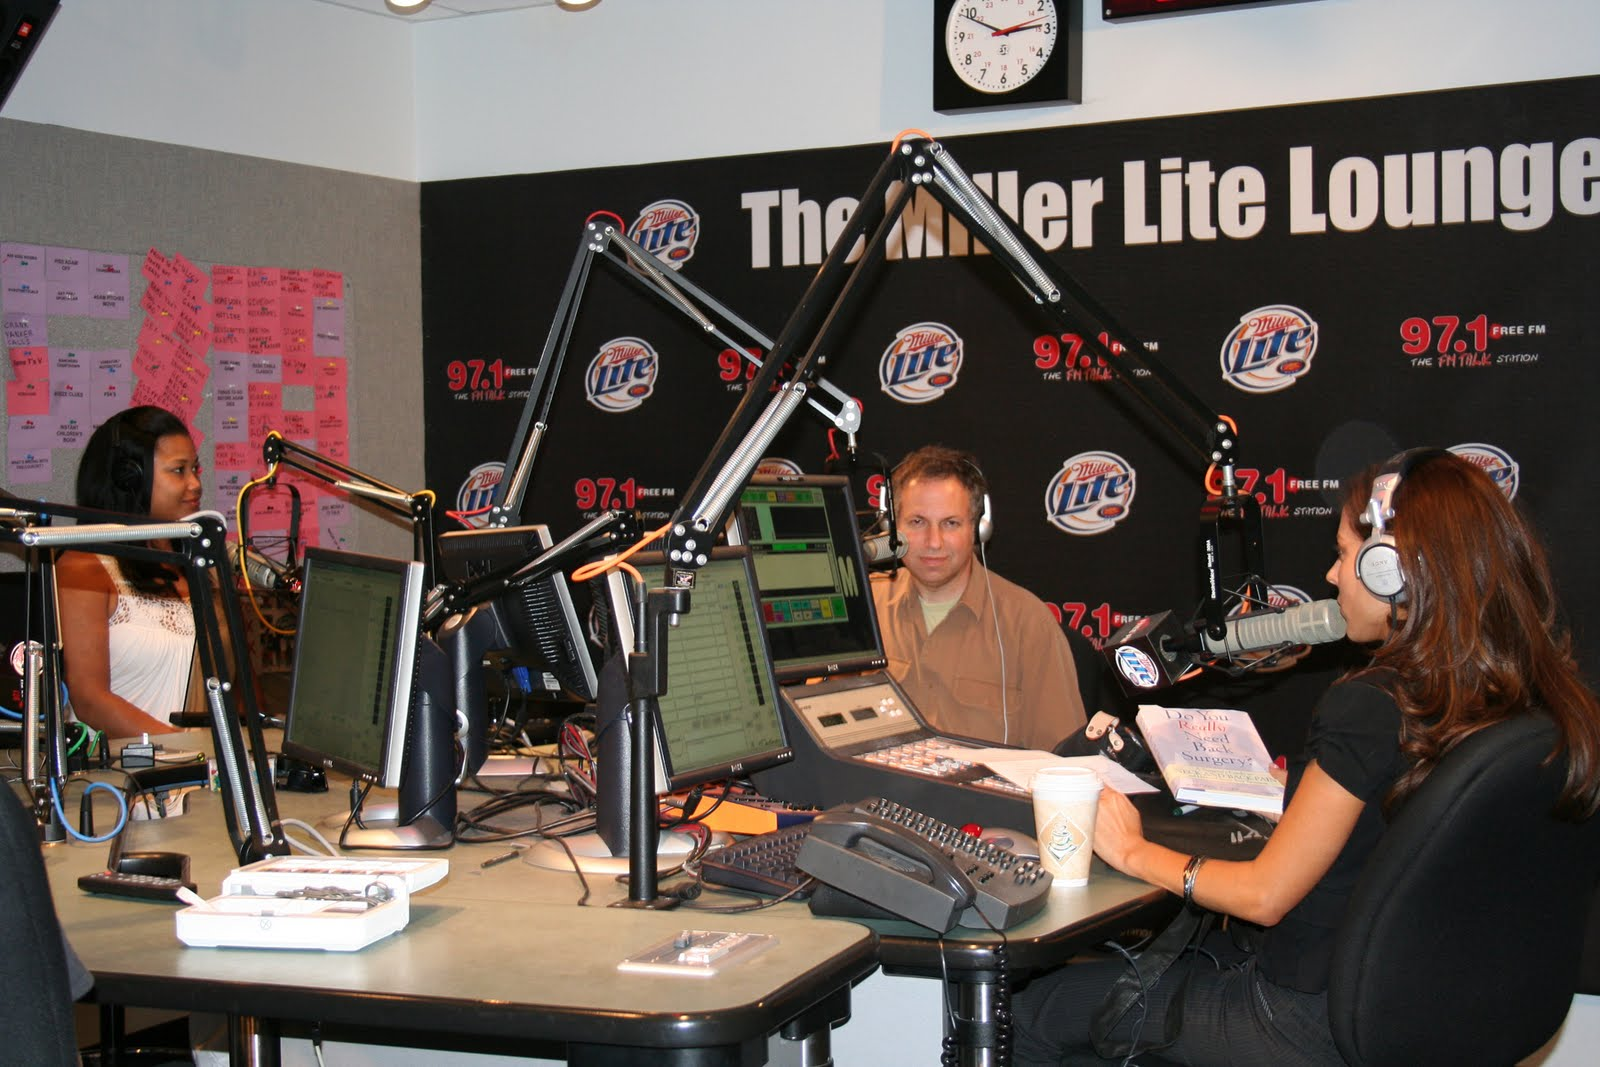 CBS Radio's 'Pain Free Hour' recorded at KLSX 97.1 FM Los Angeles. The show featured Aaron Filler with glamorous co-hosts Shirlee Jackson and Kerri Kasem (Casey Kasem's daughter).